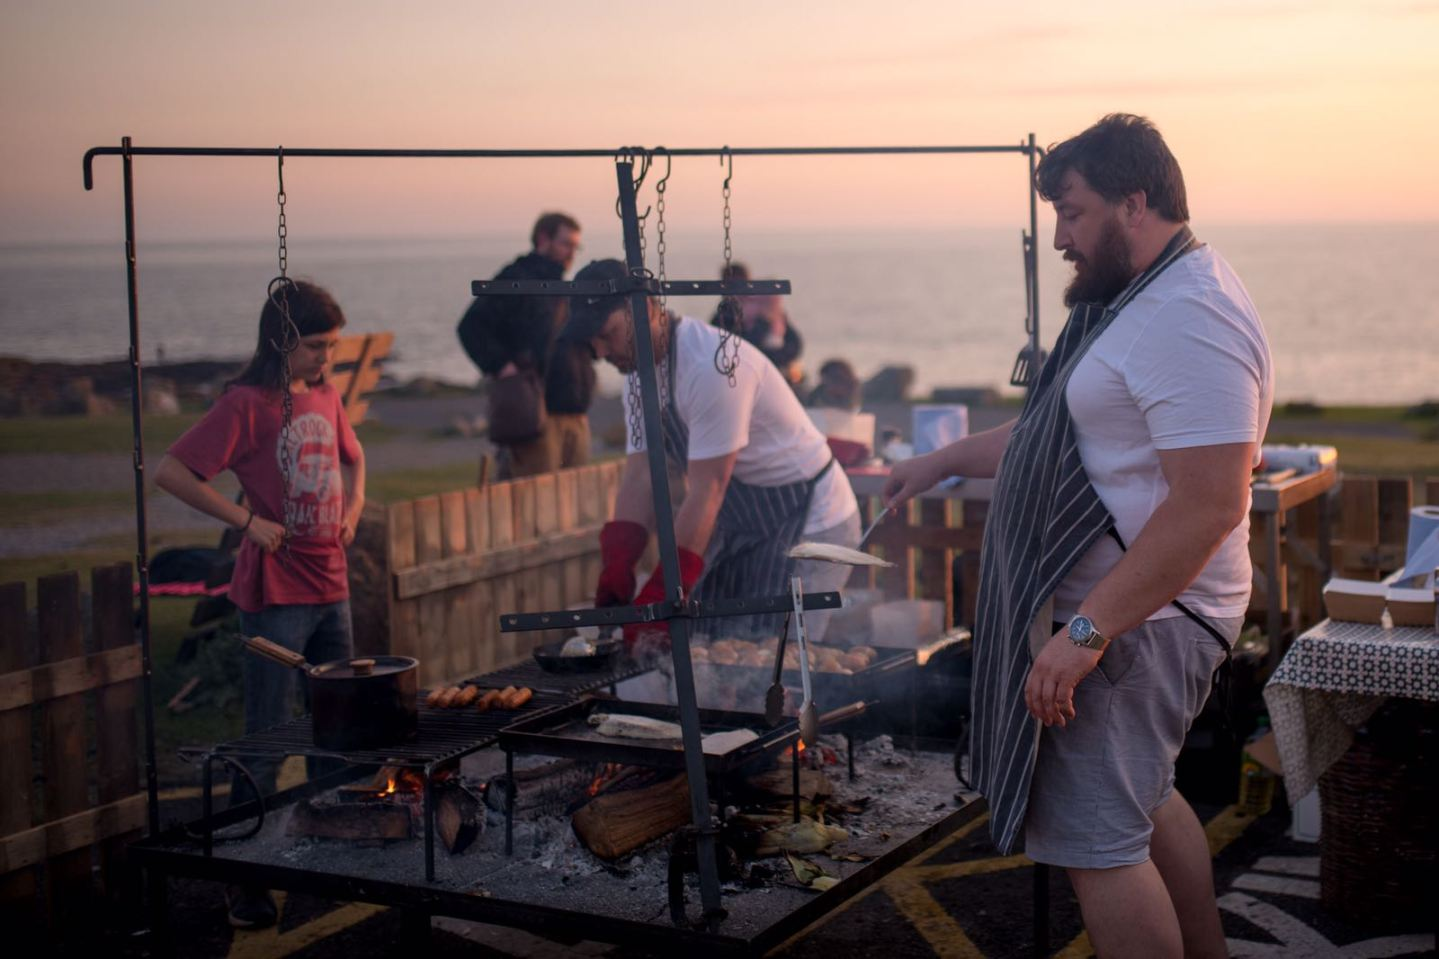 Eat freshly cooked seafood on Ogmore beach with 'The Two Anchors'